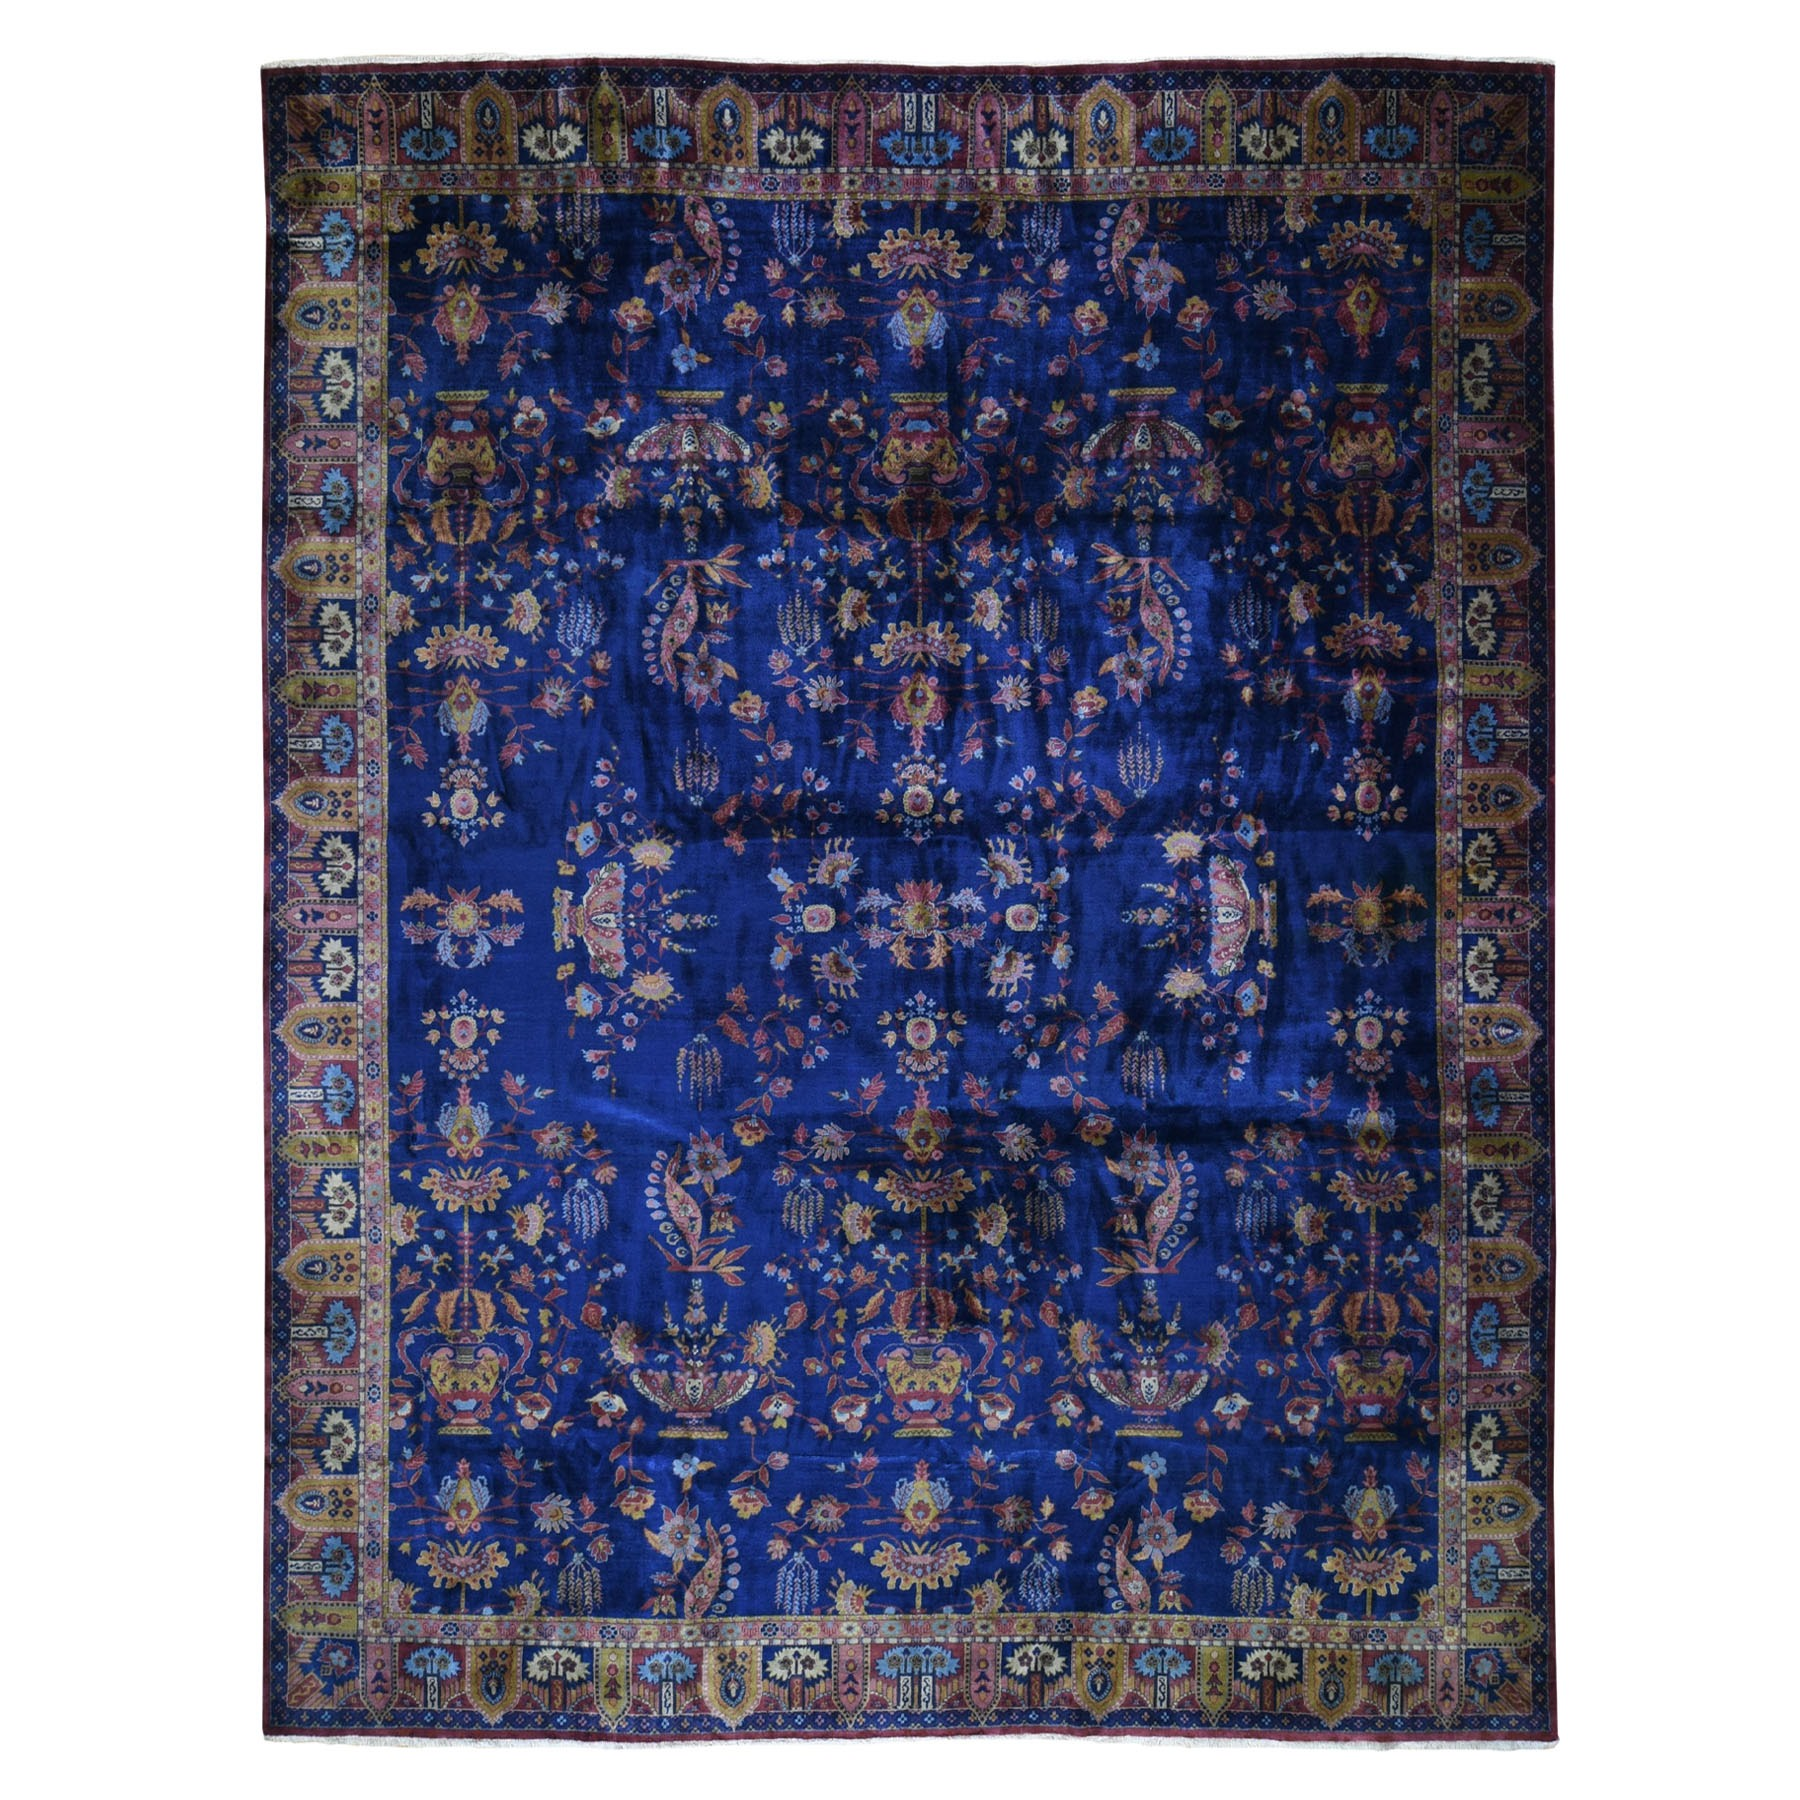 "12'x14'5"" Oversized Antique Indo Sarouk Dense Weave Full Pile And Soft Hand Woven Oriental Rug"